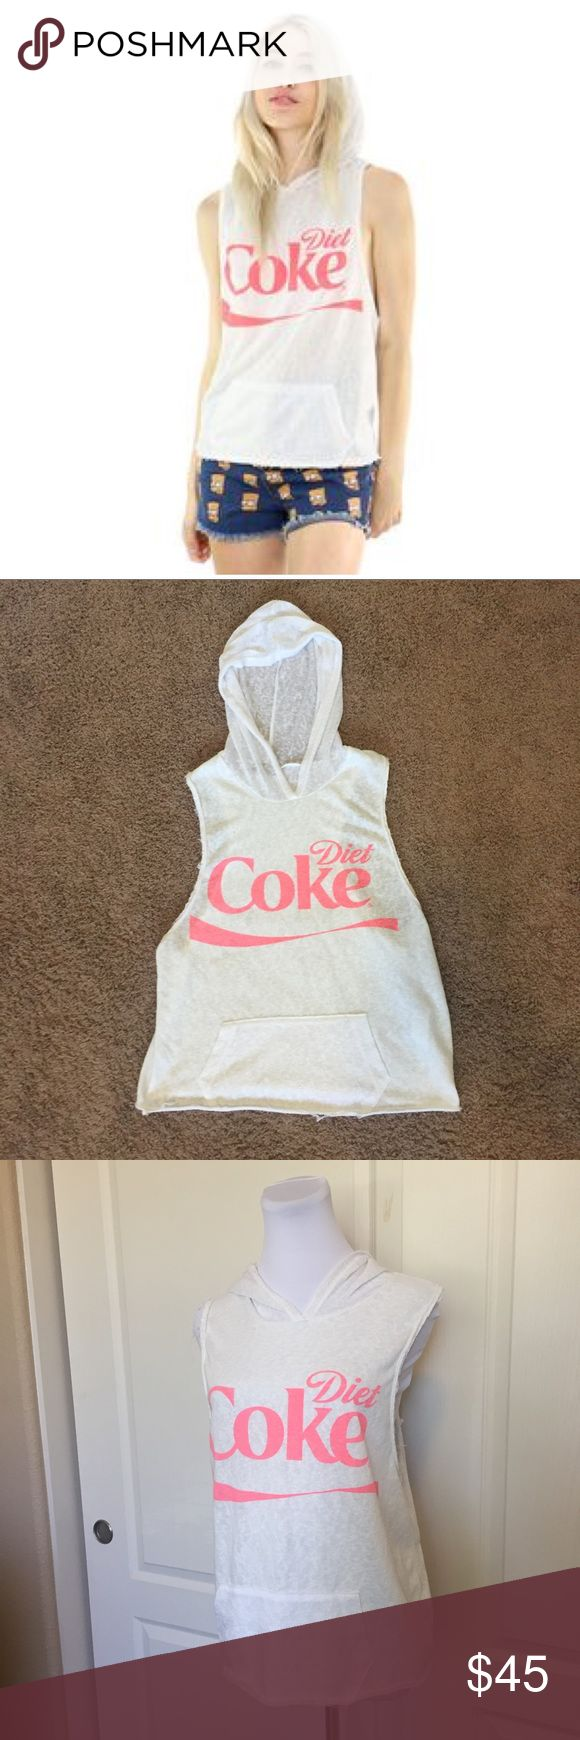 "Diet Coke Sleeveless White Raw Edge Hoodie M Diet Coke sleeveless white hoodie. Medium. Muscle tee / tank top style. ~24"" long from top of shoulder to bottom & ~19"" across the bottom of the low-cut arm holes. The fabric feels like a lightweight terry. It has a worn-in, vintage look and feel to it. Lots of stretch. 70% poly 20% cotton 10% rayon. Raw cut edging outside of the seams. Kangaroo-style hooded sweatshirt pocket. Neon orange/pink lettering. Worn once. No flaws. From Urban Outfitters…"